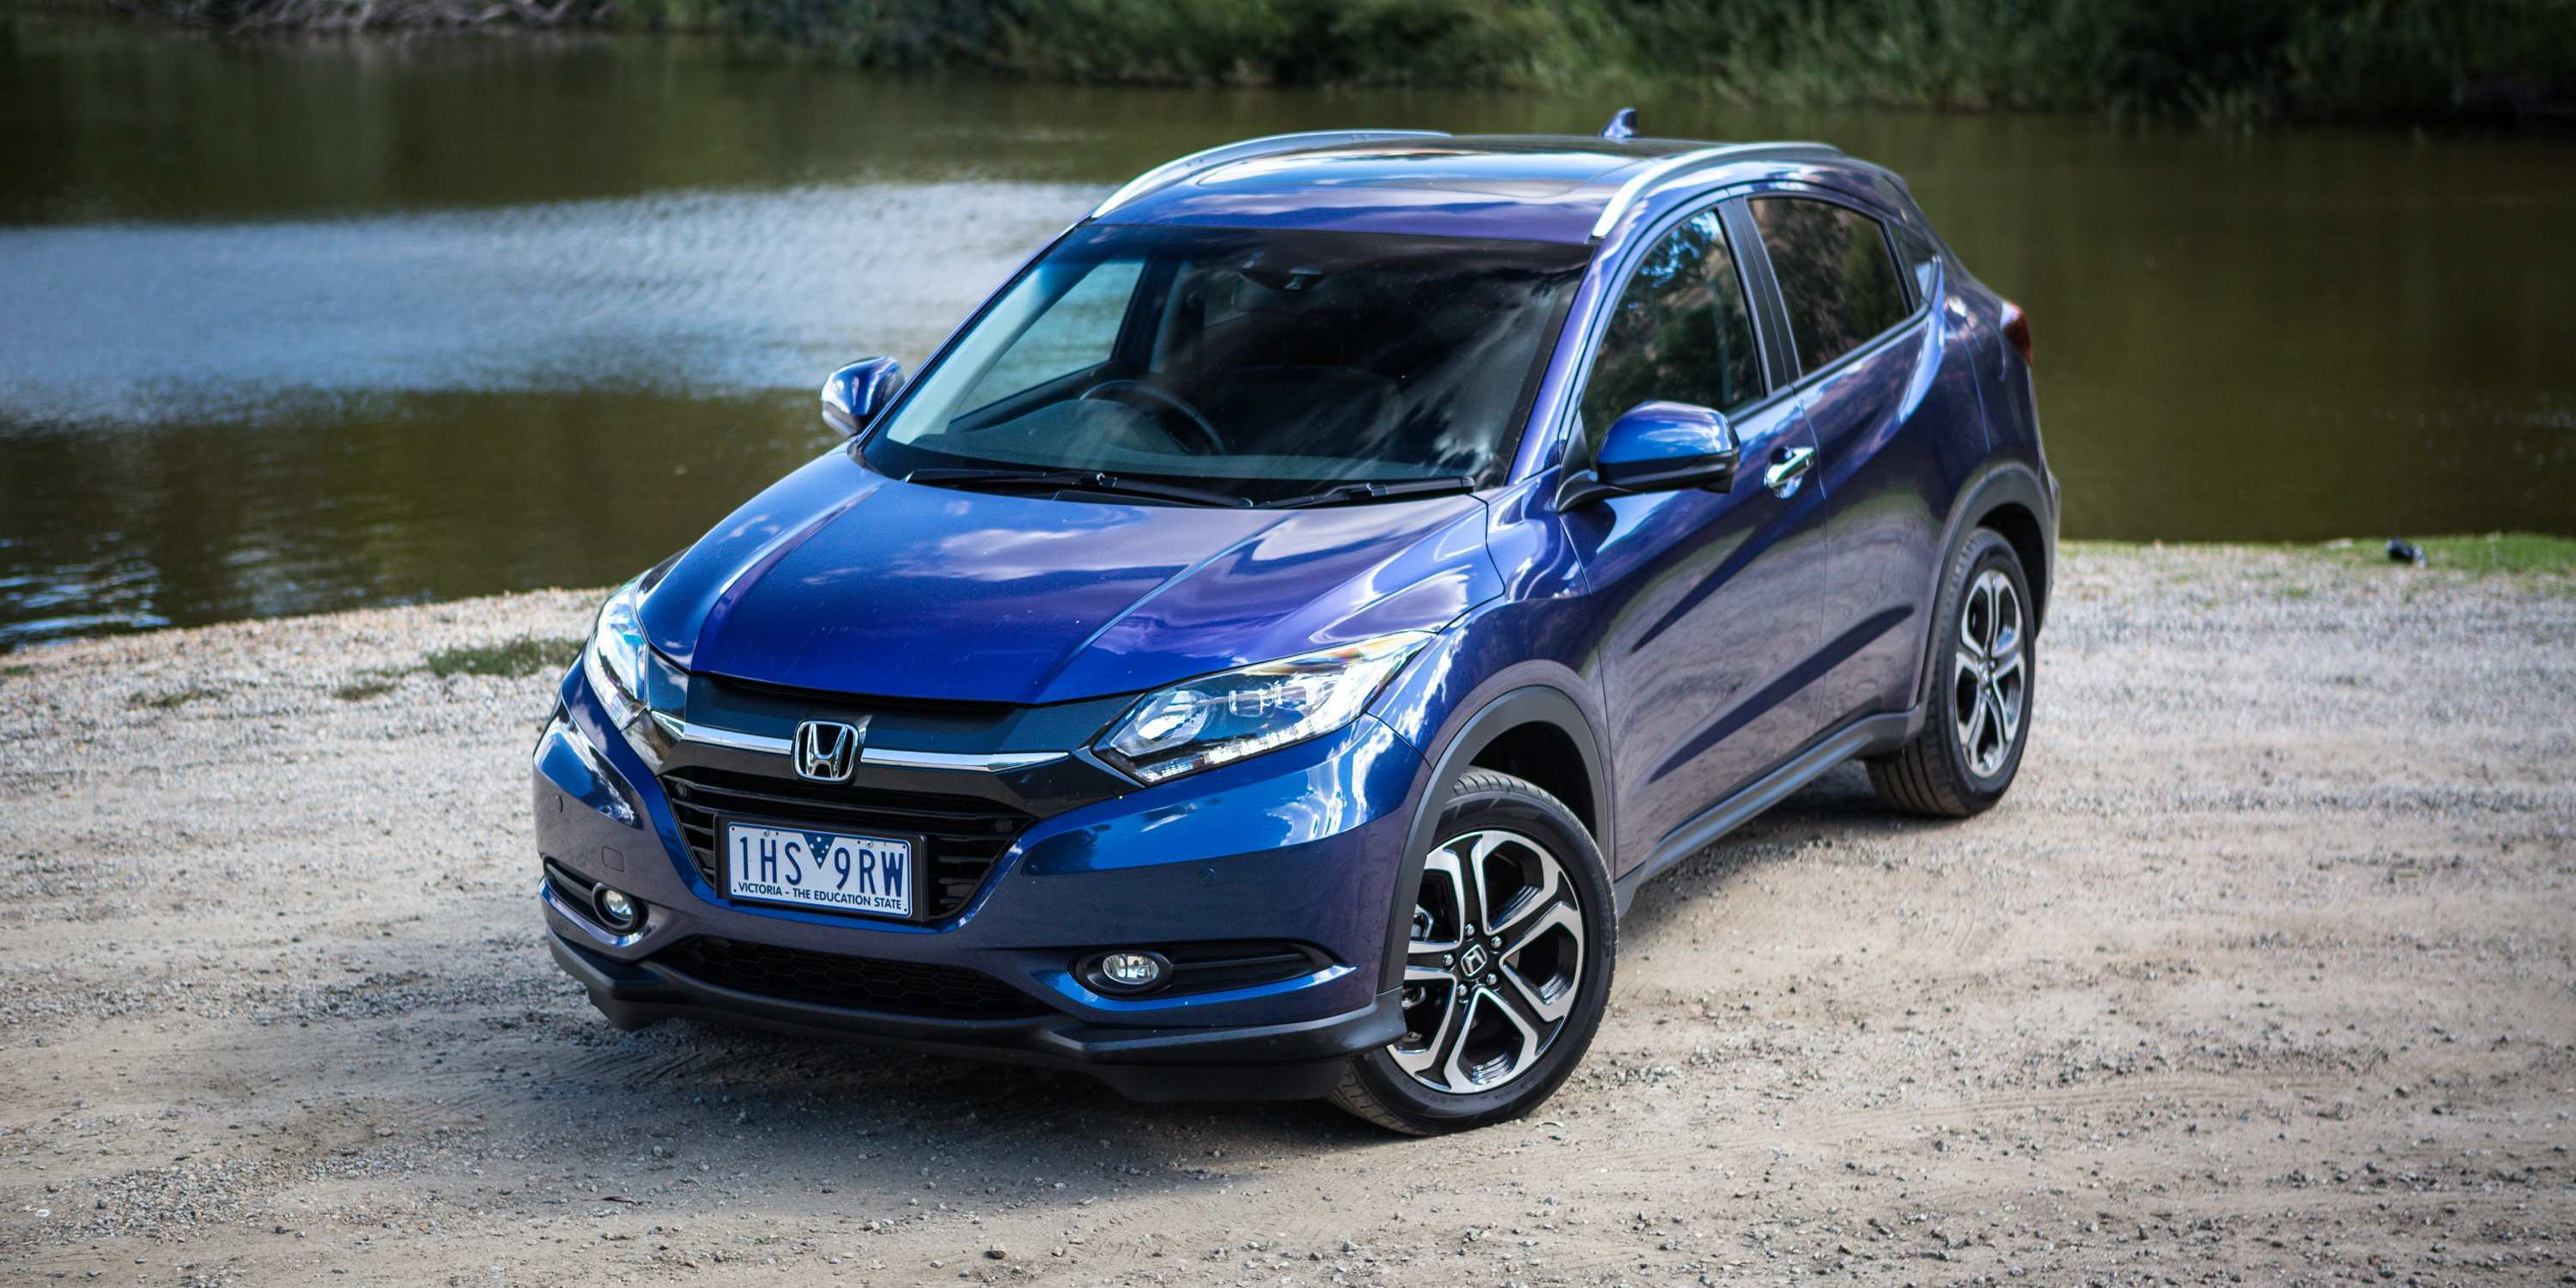 37 Great 2019 Honda Hrv Redesign Research New with 2019 Honda Hrv Redesign